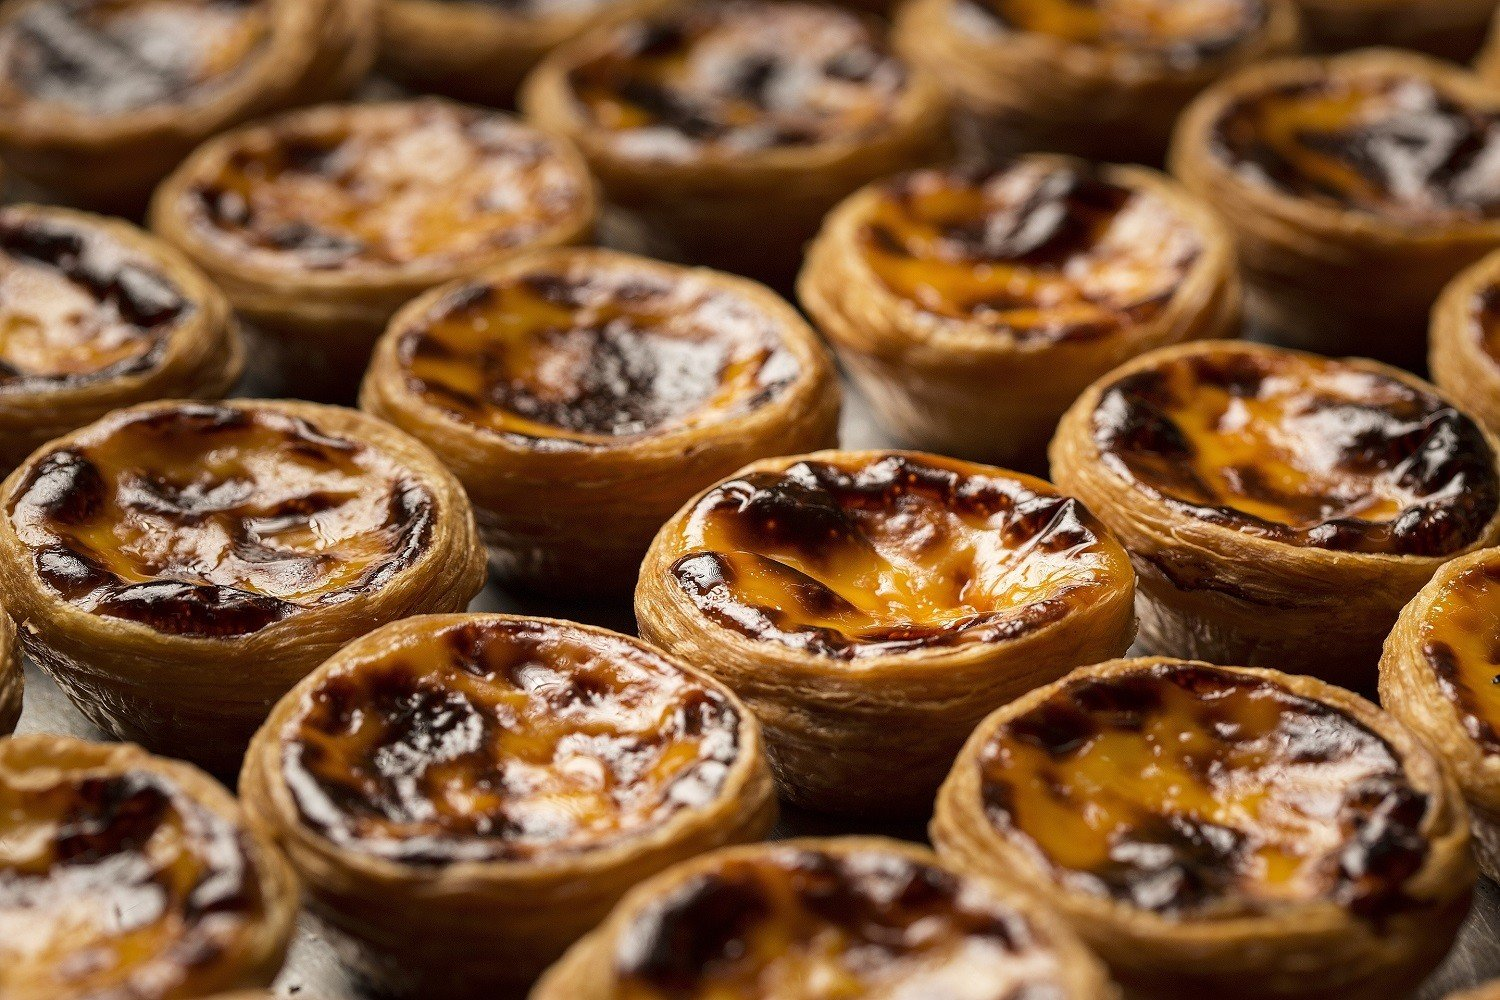 Breaking Hong Kong egg tart news: Lord Stow's is back, now at the